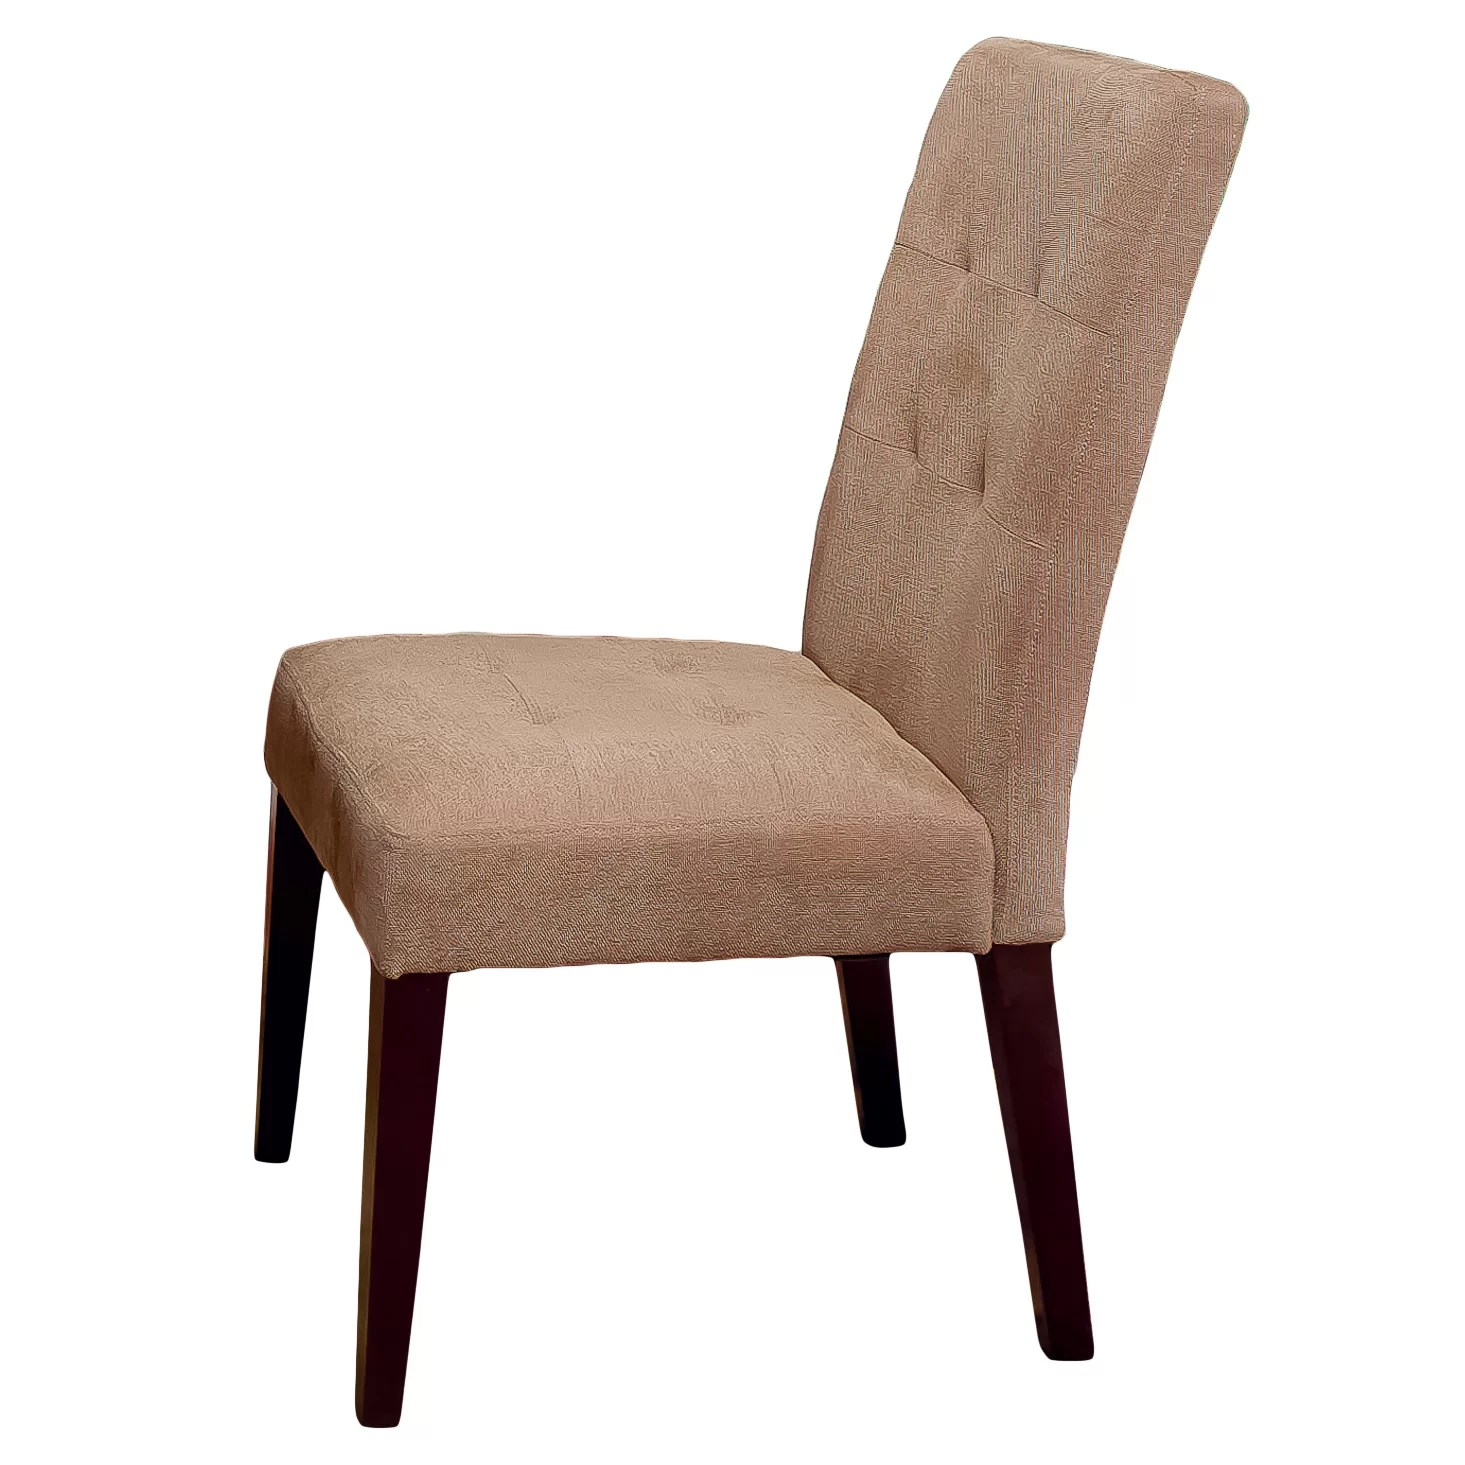 leather tufted dining chair images clip art home loft concepts talib